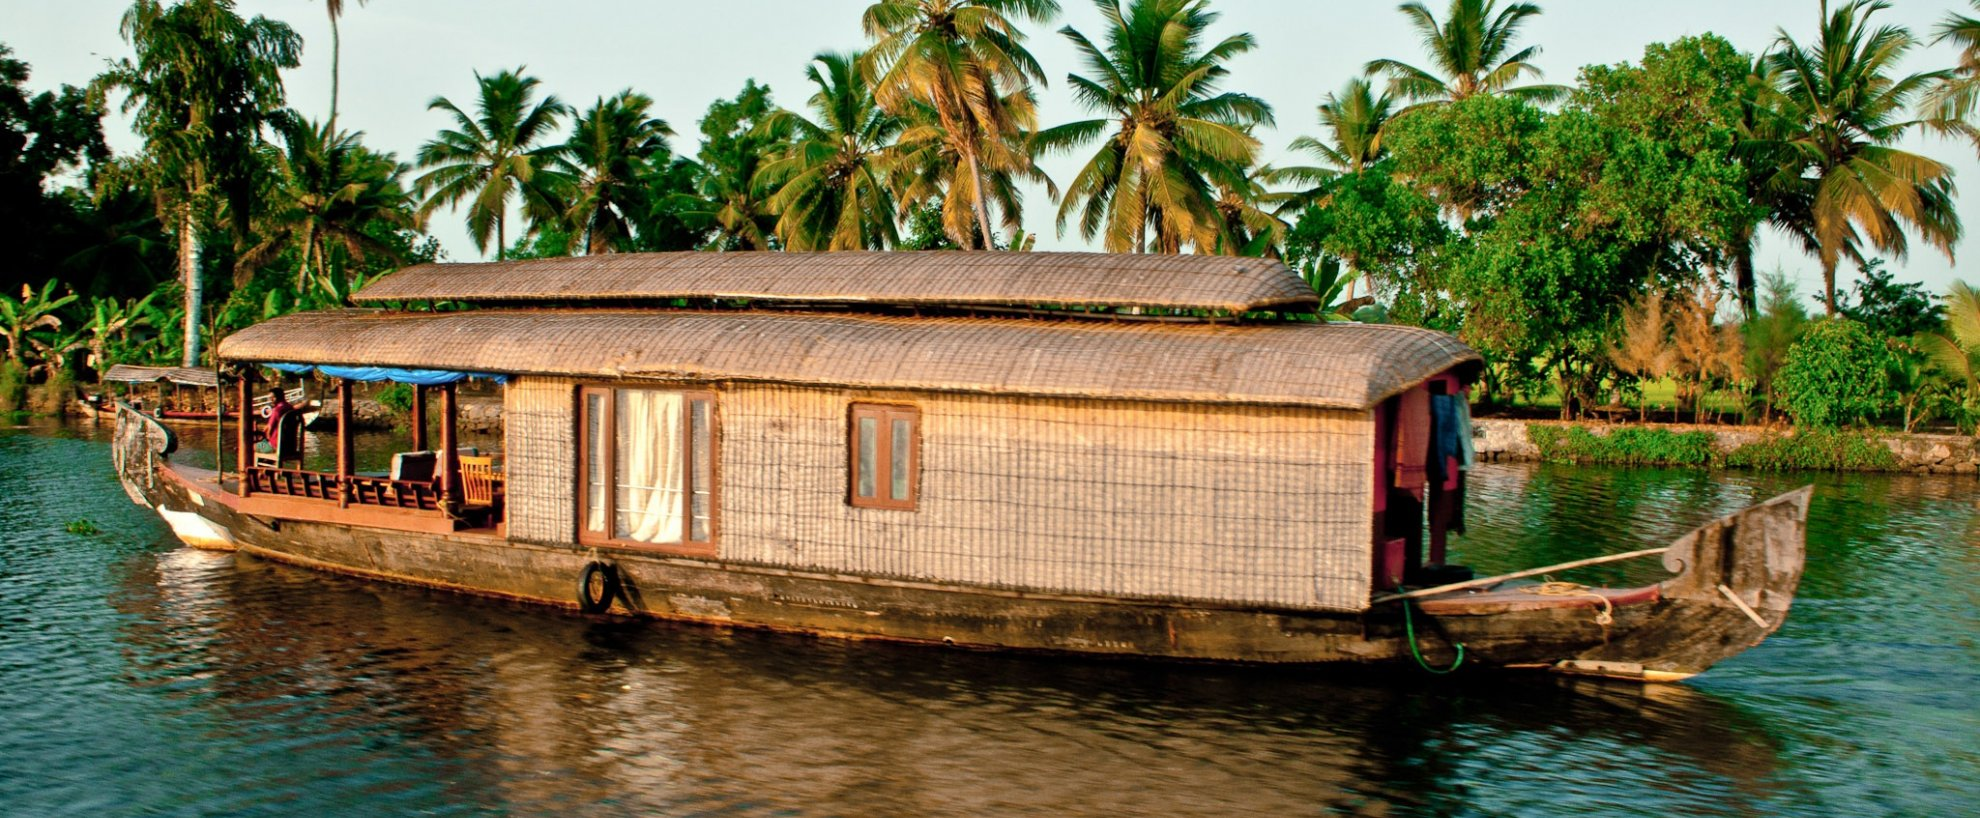 Indien Kerala Backwaters Hausboot